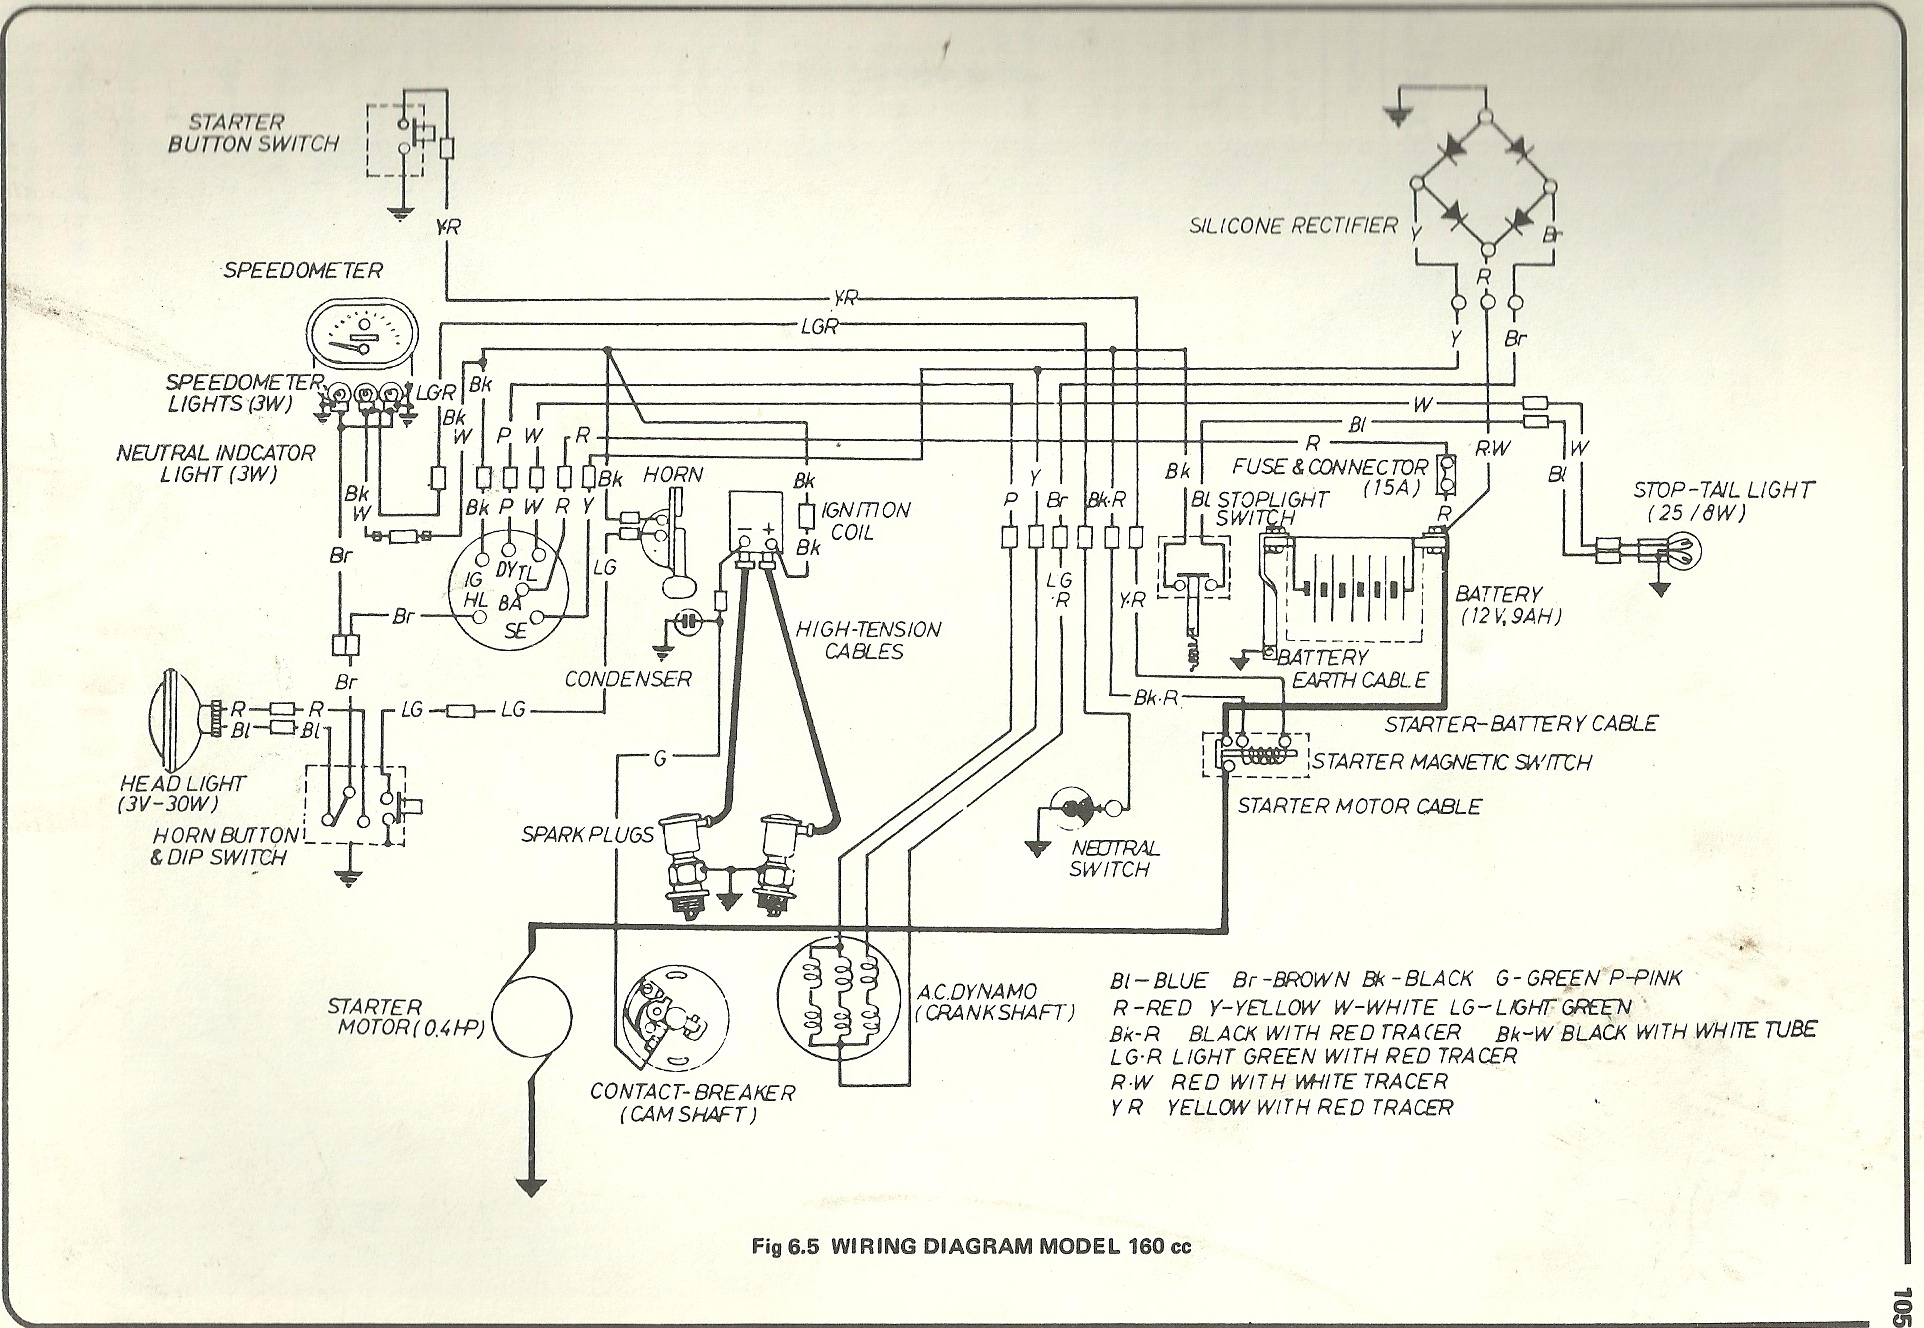 1982 Kz650 Wiring Diagram | Wiring Liry on